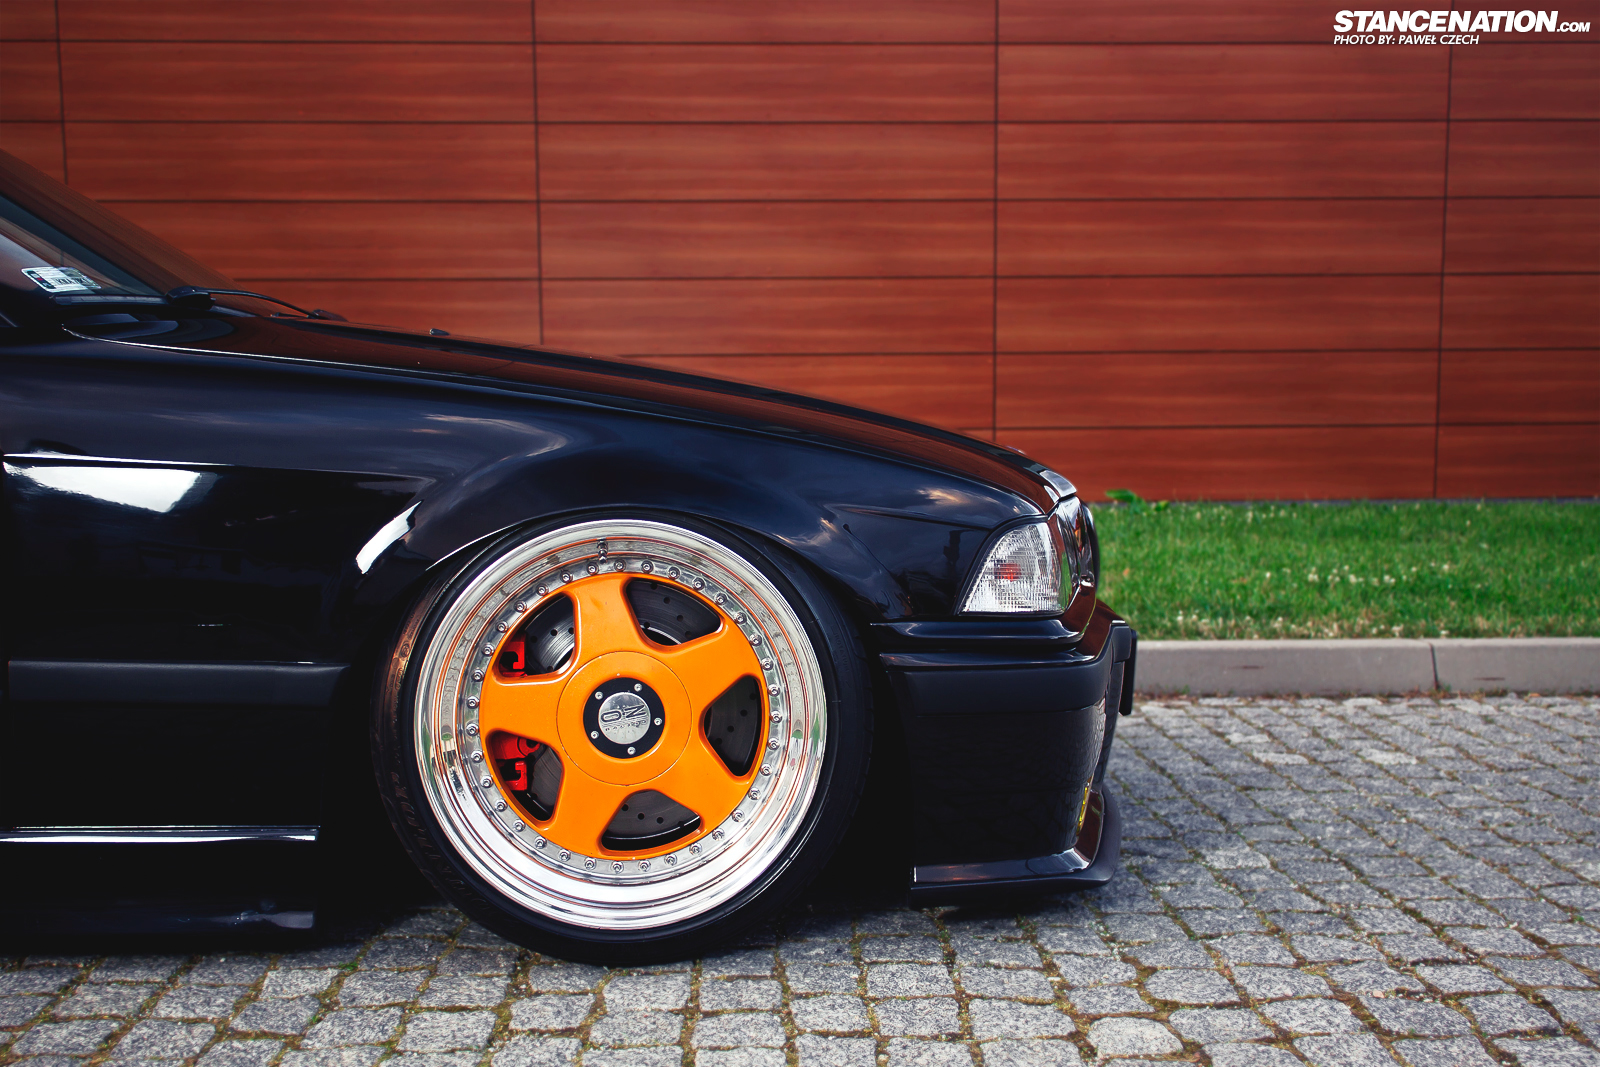 Polish Drop Top Damian S Bmw 328i Stancenation